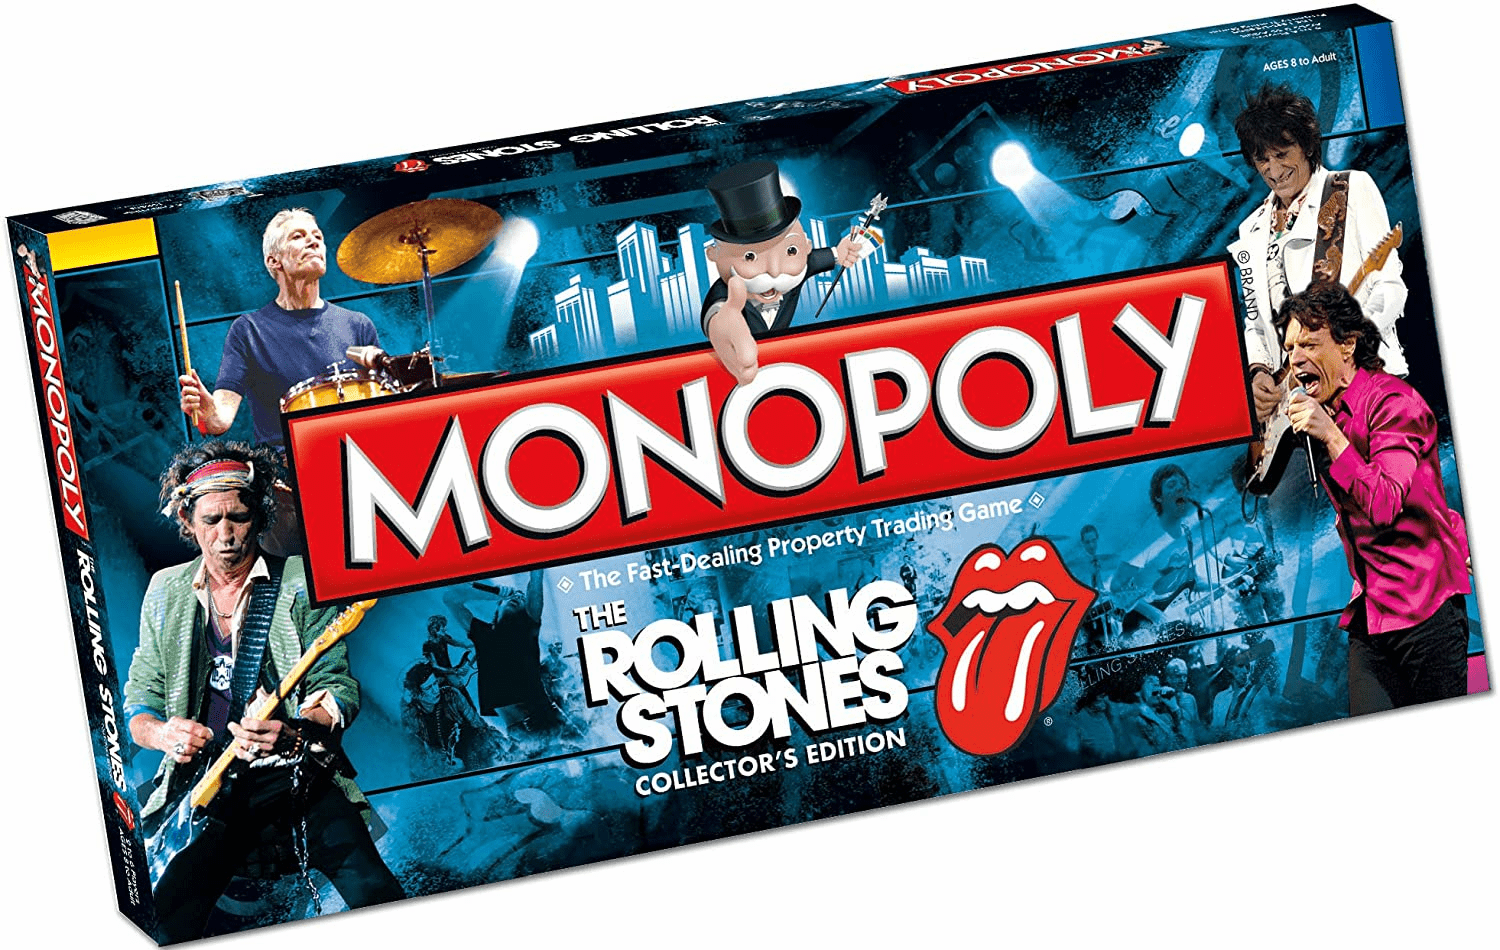 USAopoly The Rolling Stones Collector's Edition Monopoly Board Game